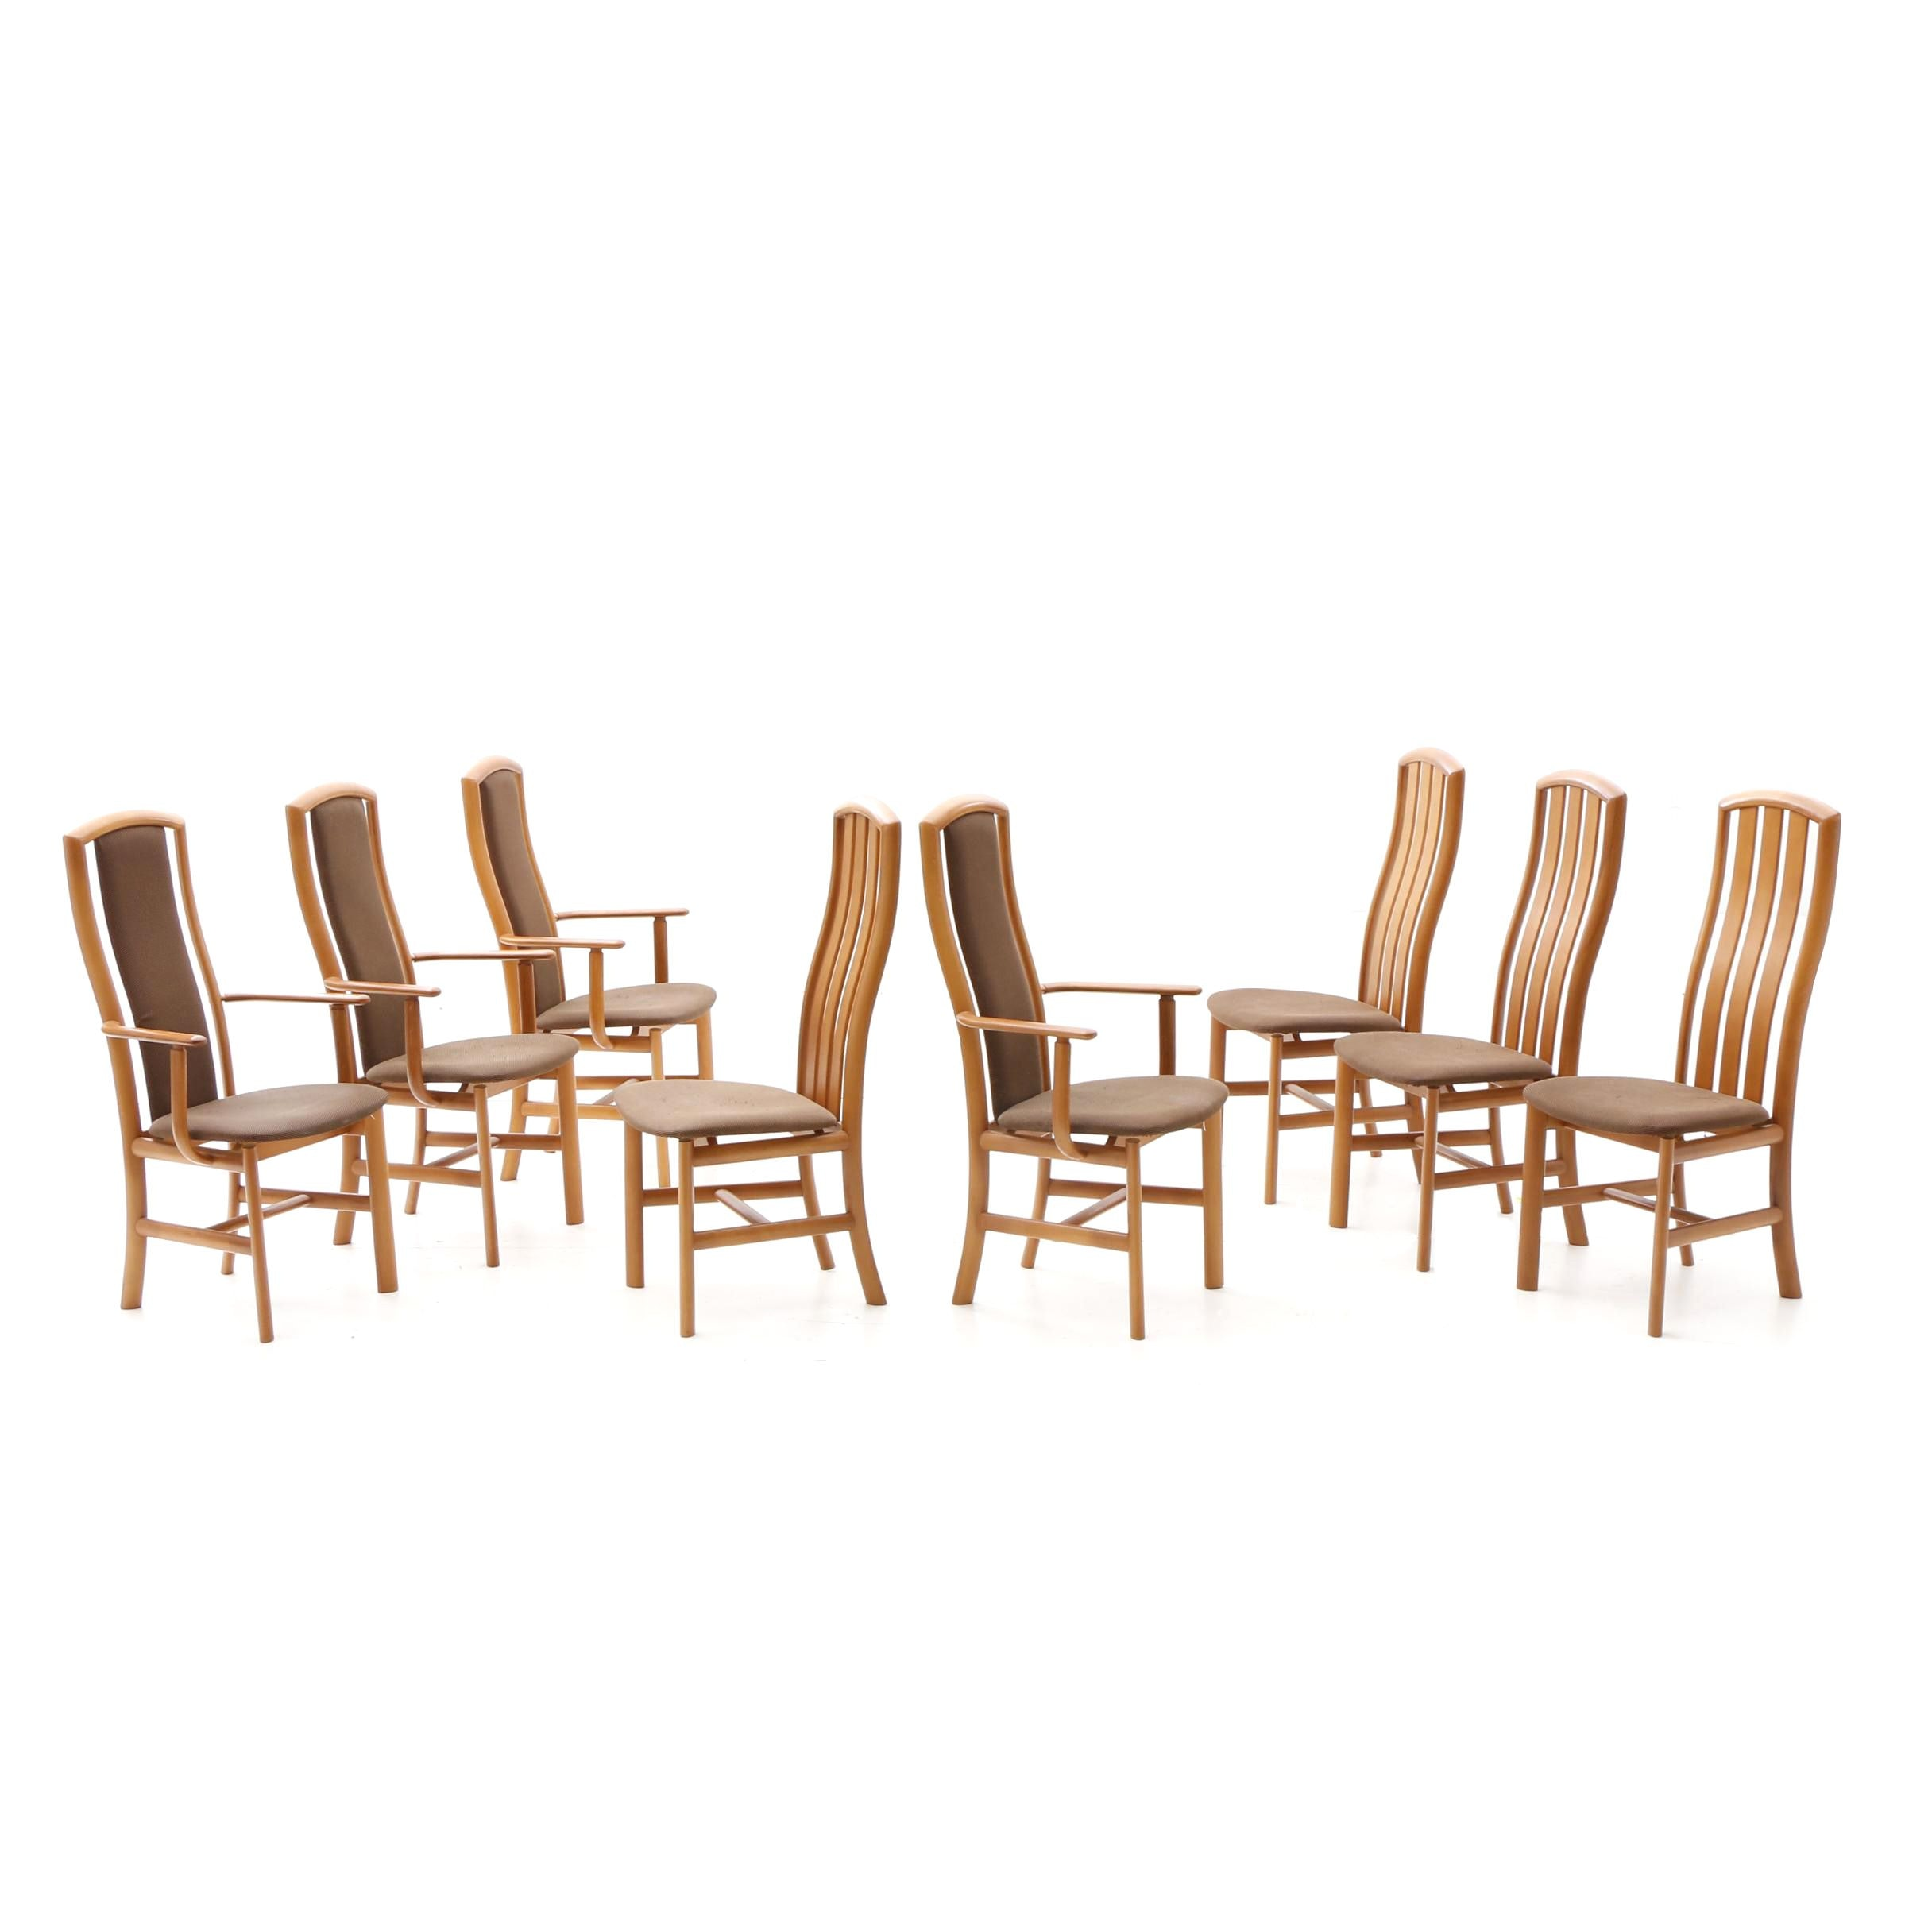 "Eight Skovby ""Kirsebaer"" Danish Modern Dining Chairs"